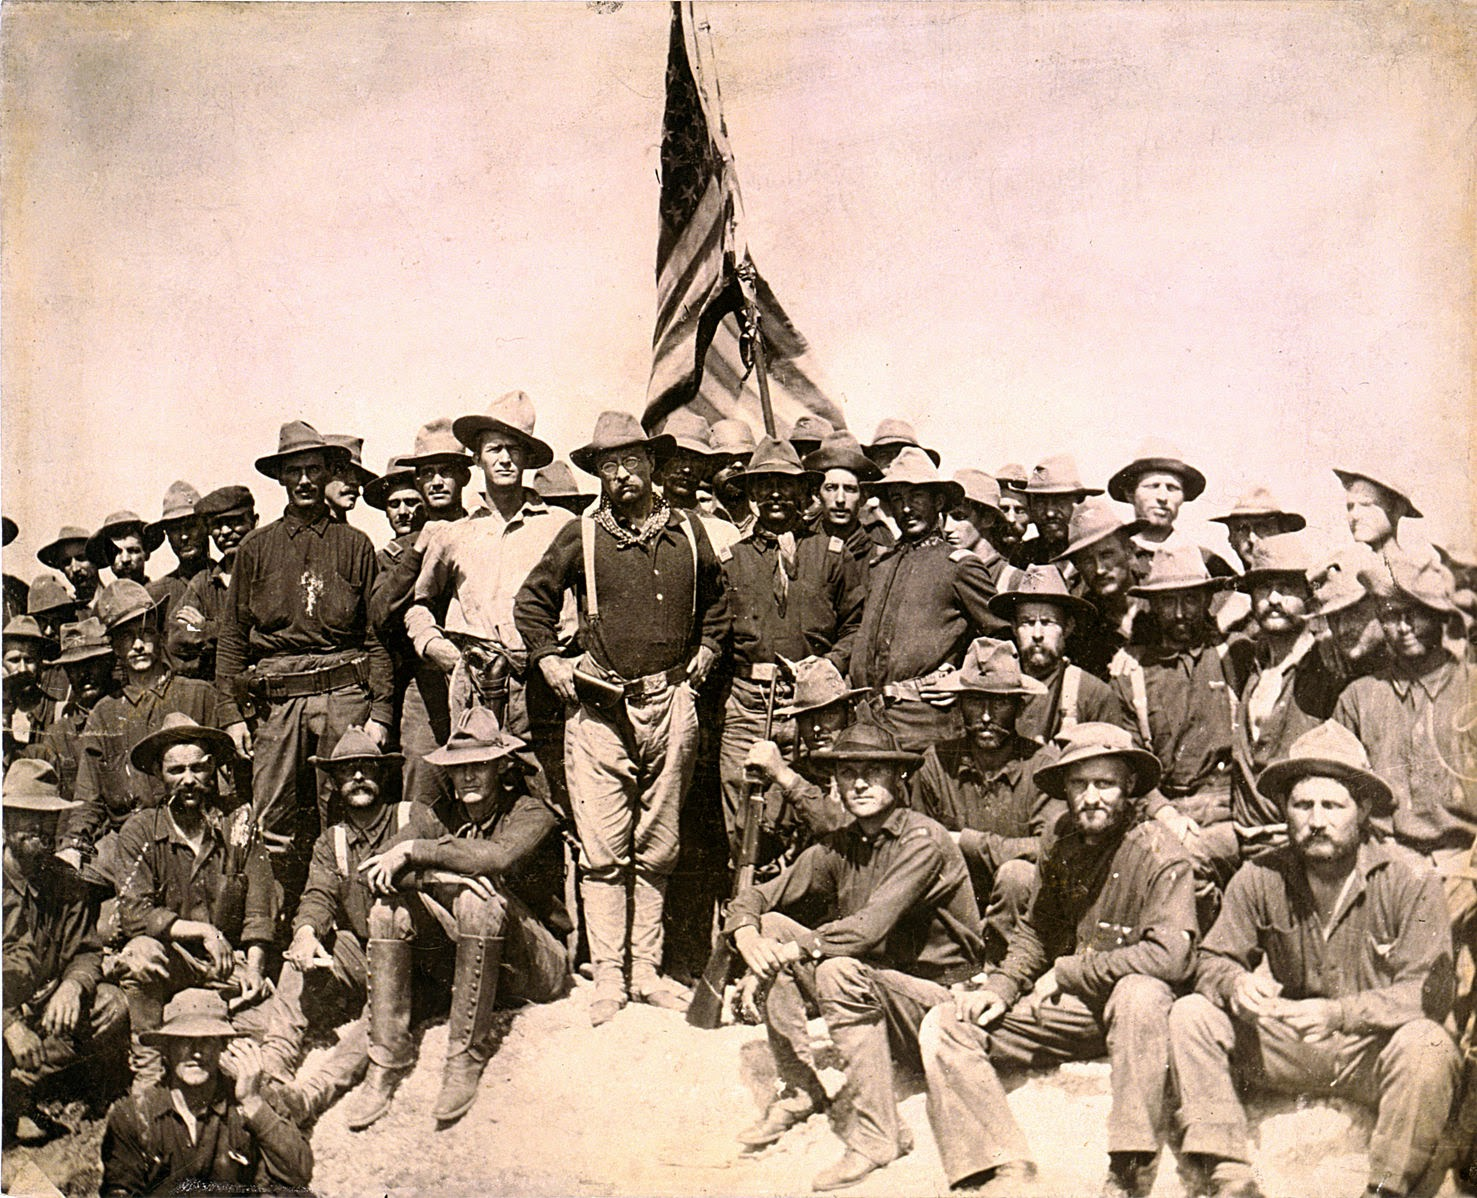 Teddy Roosevelt Rough Riders